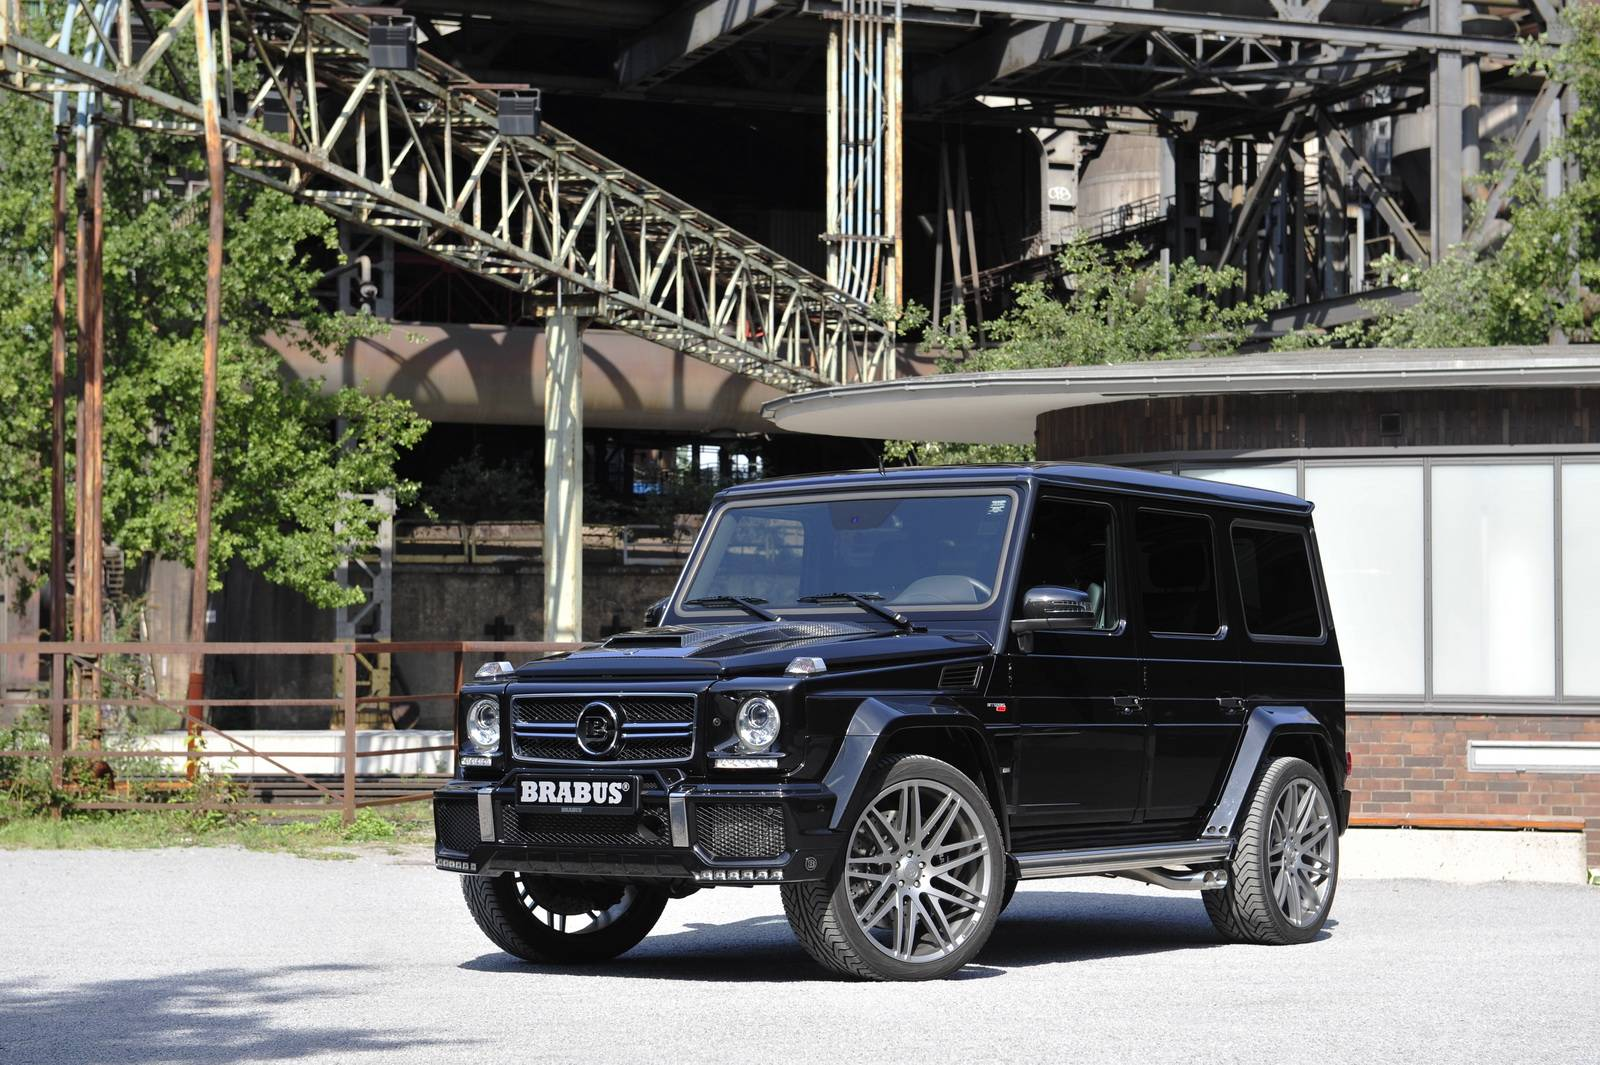 mercedes benz g63 brabus - photo #32